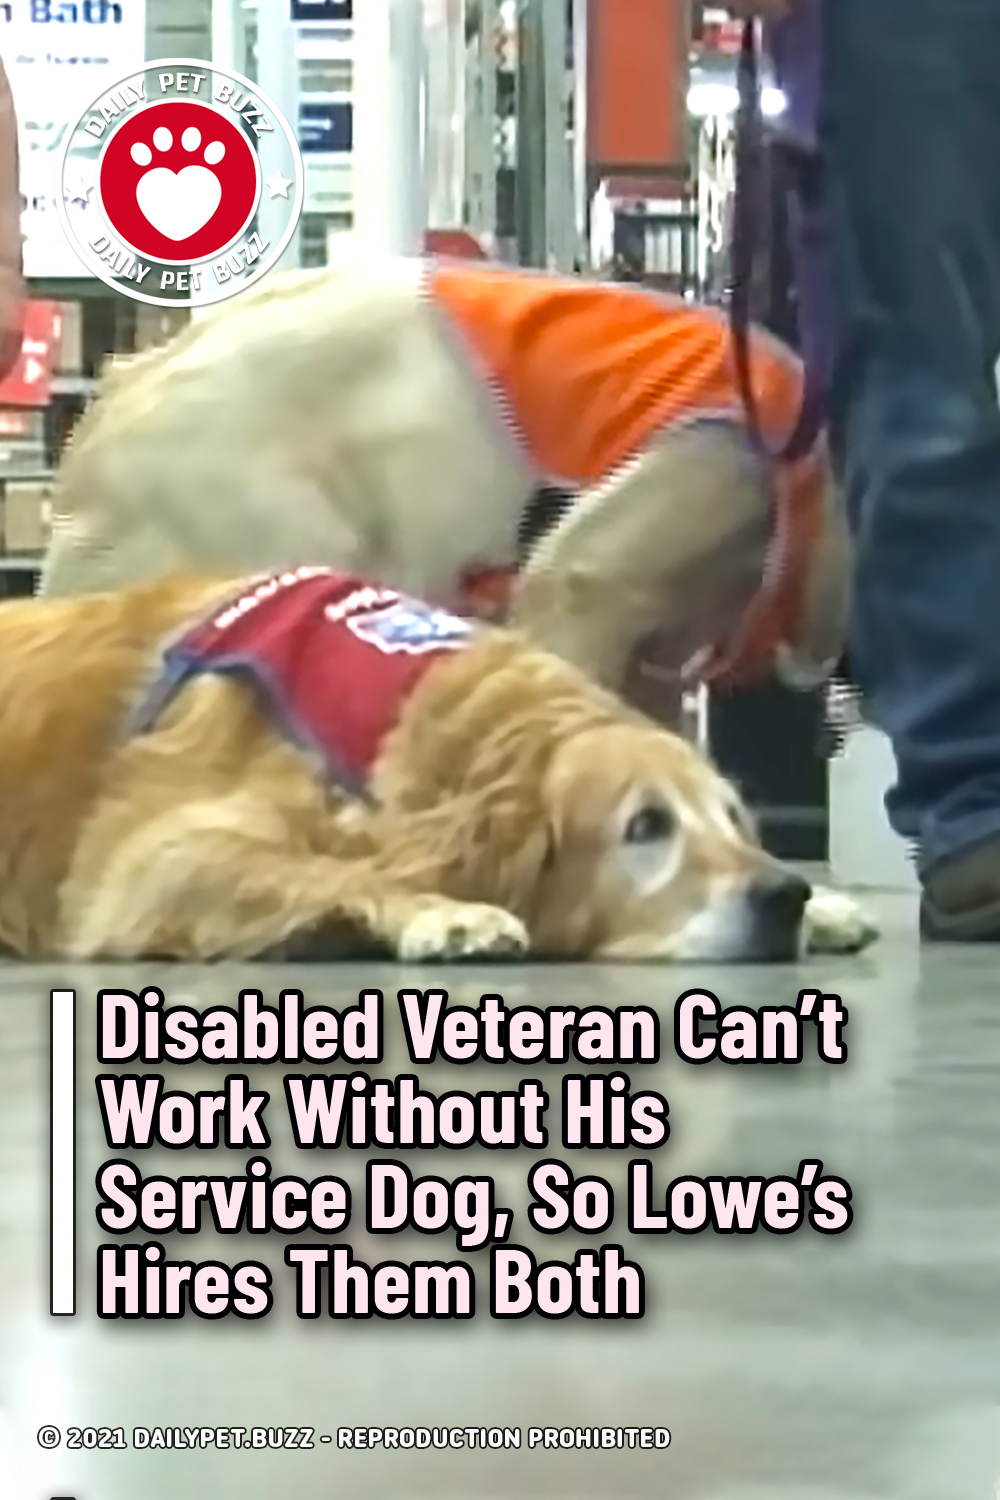 Disabled Veteran Can't Work Without His Service Dog, So Lowe's Hires Them Both